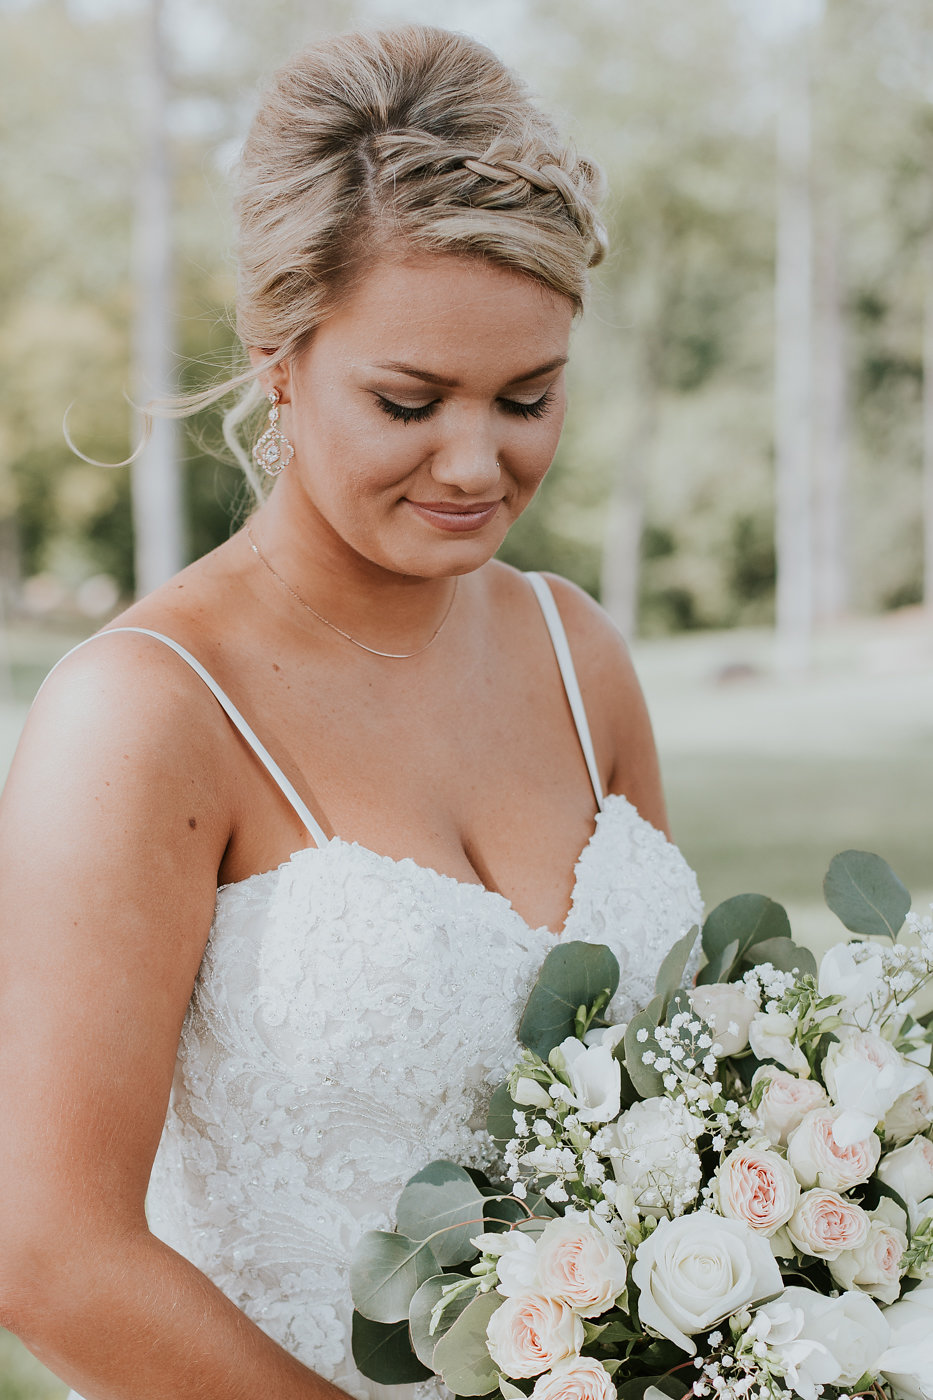 Gorgeous All White Wedding Bouquet - North Carolina Wedding Venue - Triple J Manor House Wedding